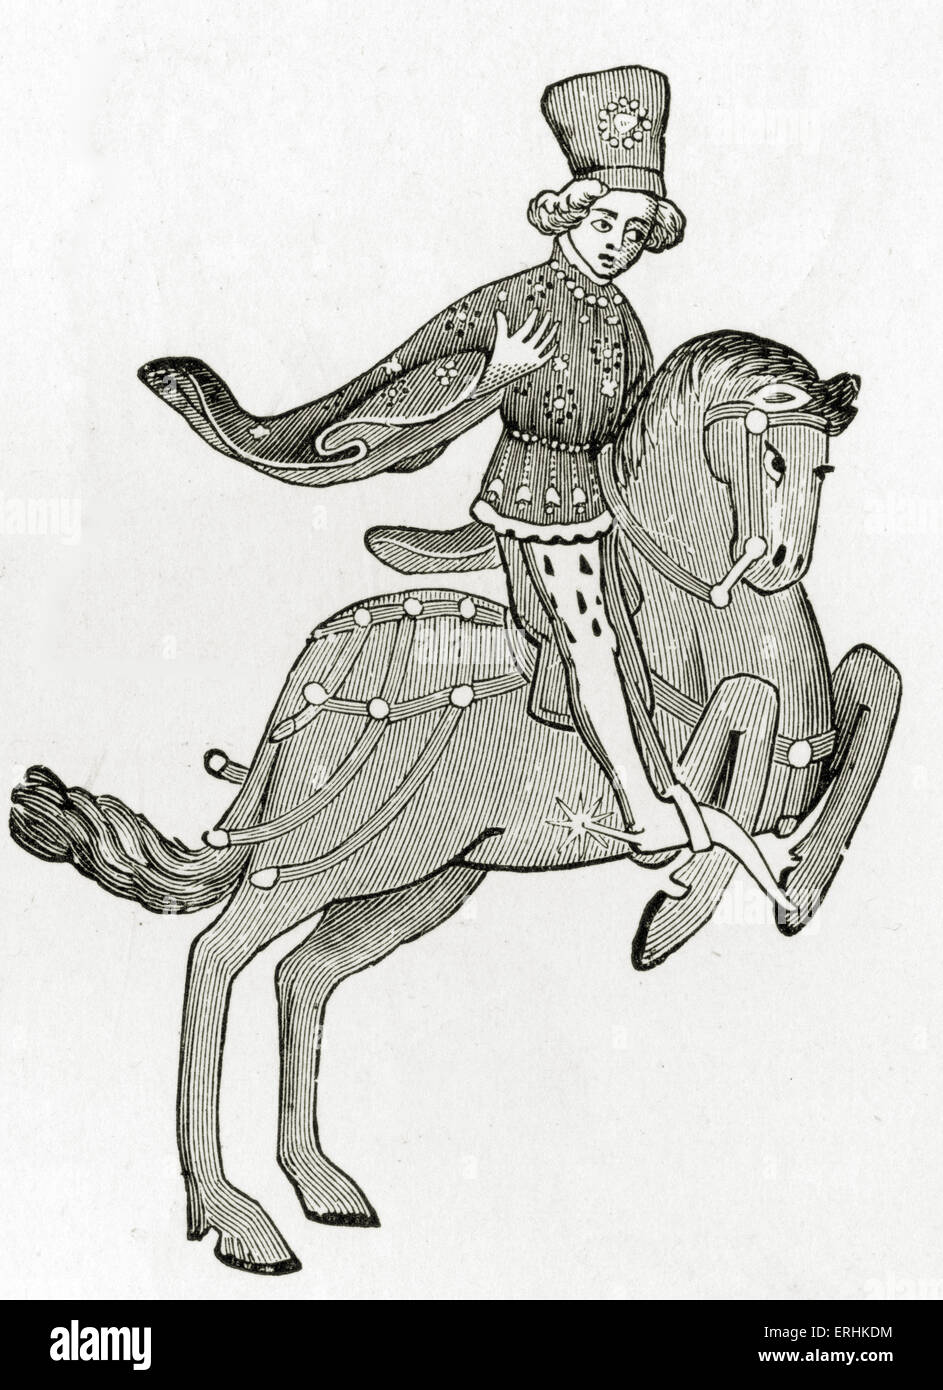 Geoffrey Chaucer ' s Canterbury Tales - The Squire on horseback. English poet, c. 1343-1400. Ellesmere manuscript - Stock Image